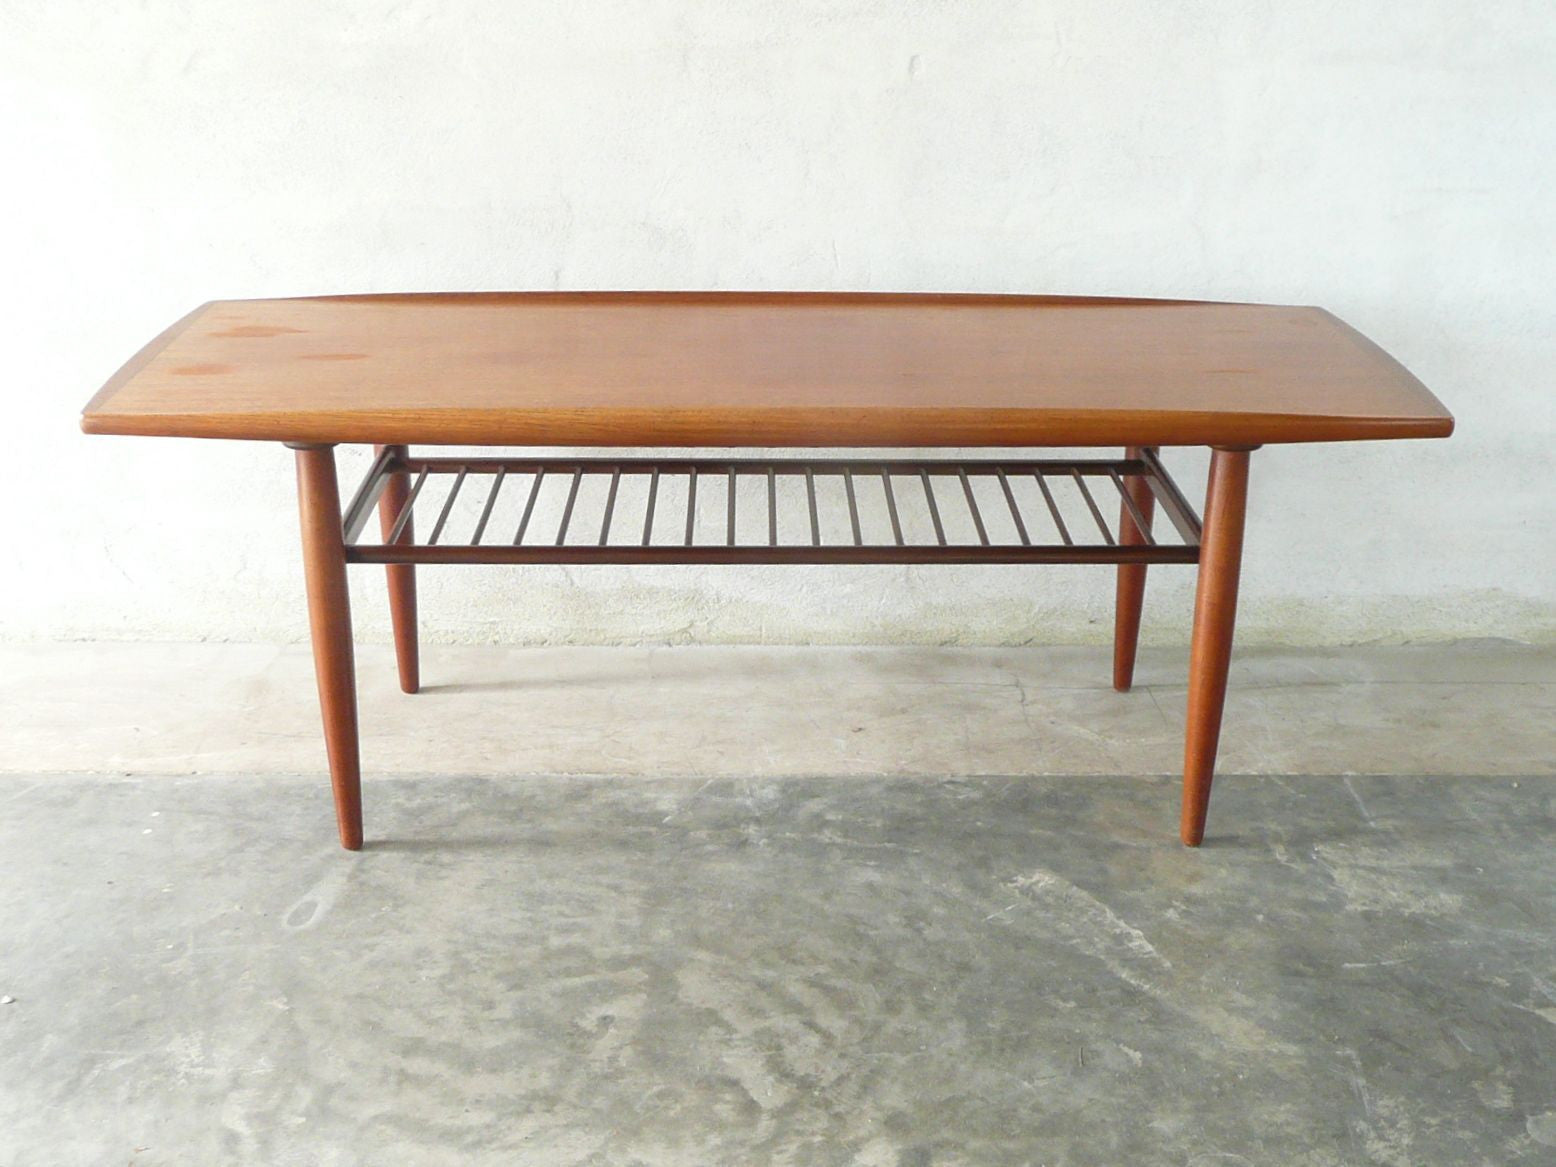 Two-tiered coffee table with lipped edge